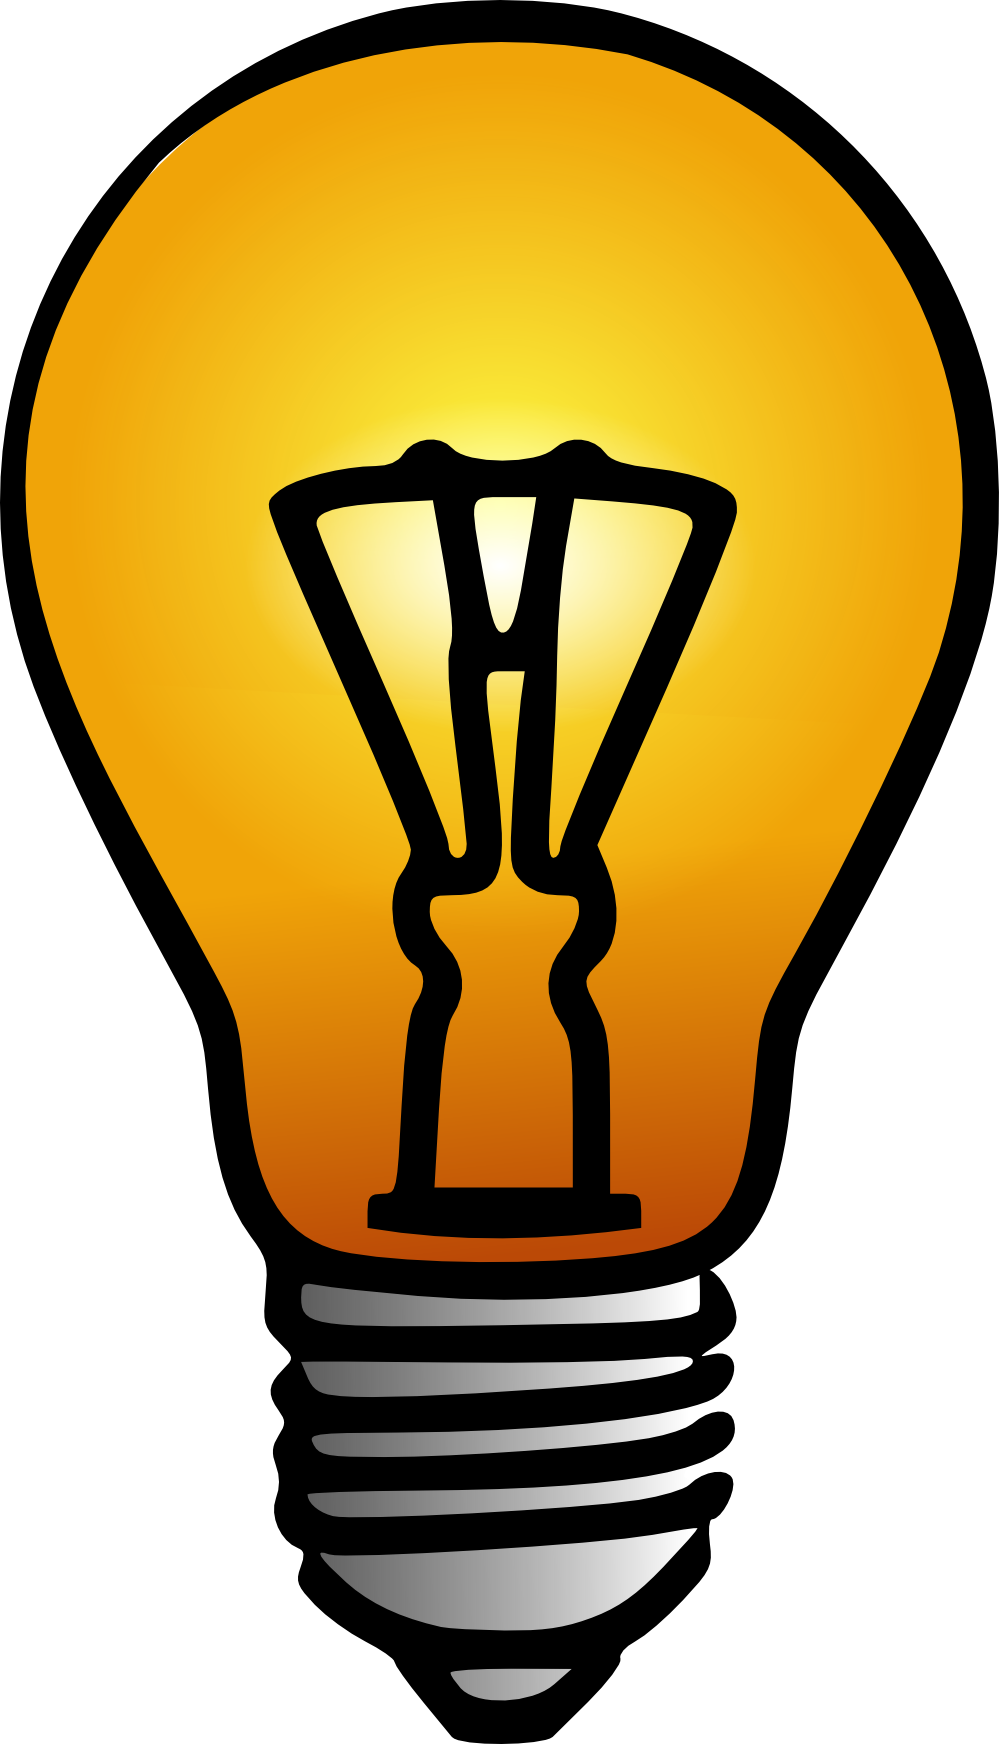 Cfl Lightbulb Clipart   Clipart Panda   Free Clipart Images